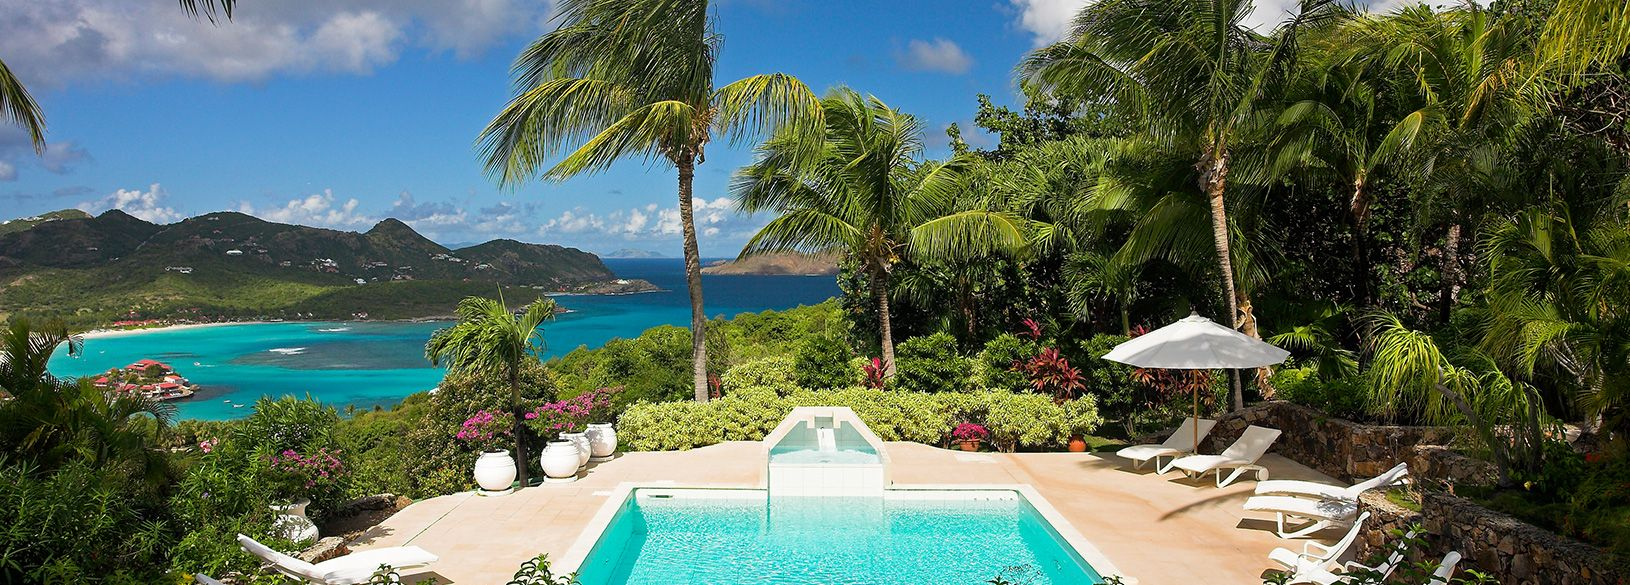 sibarth real estate - st barts : properties for sale, villas in